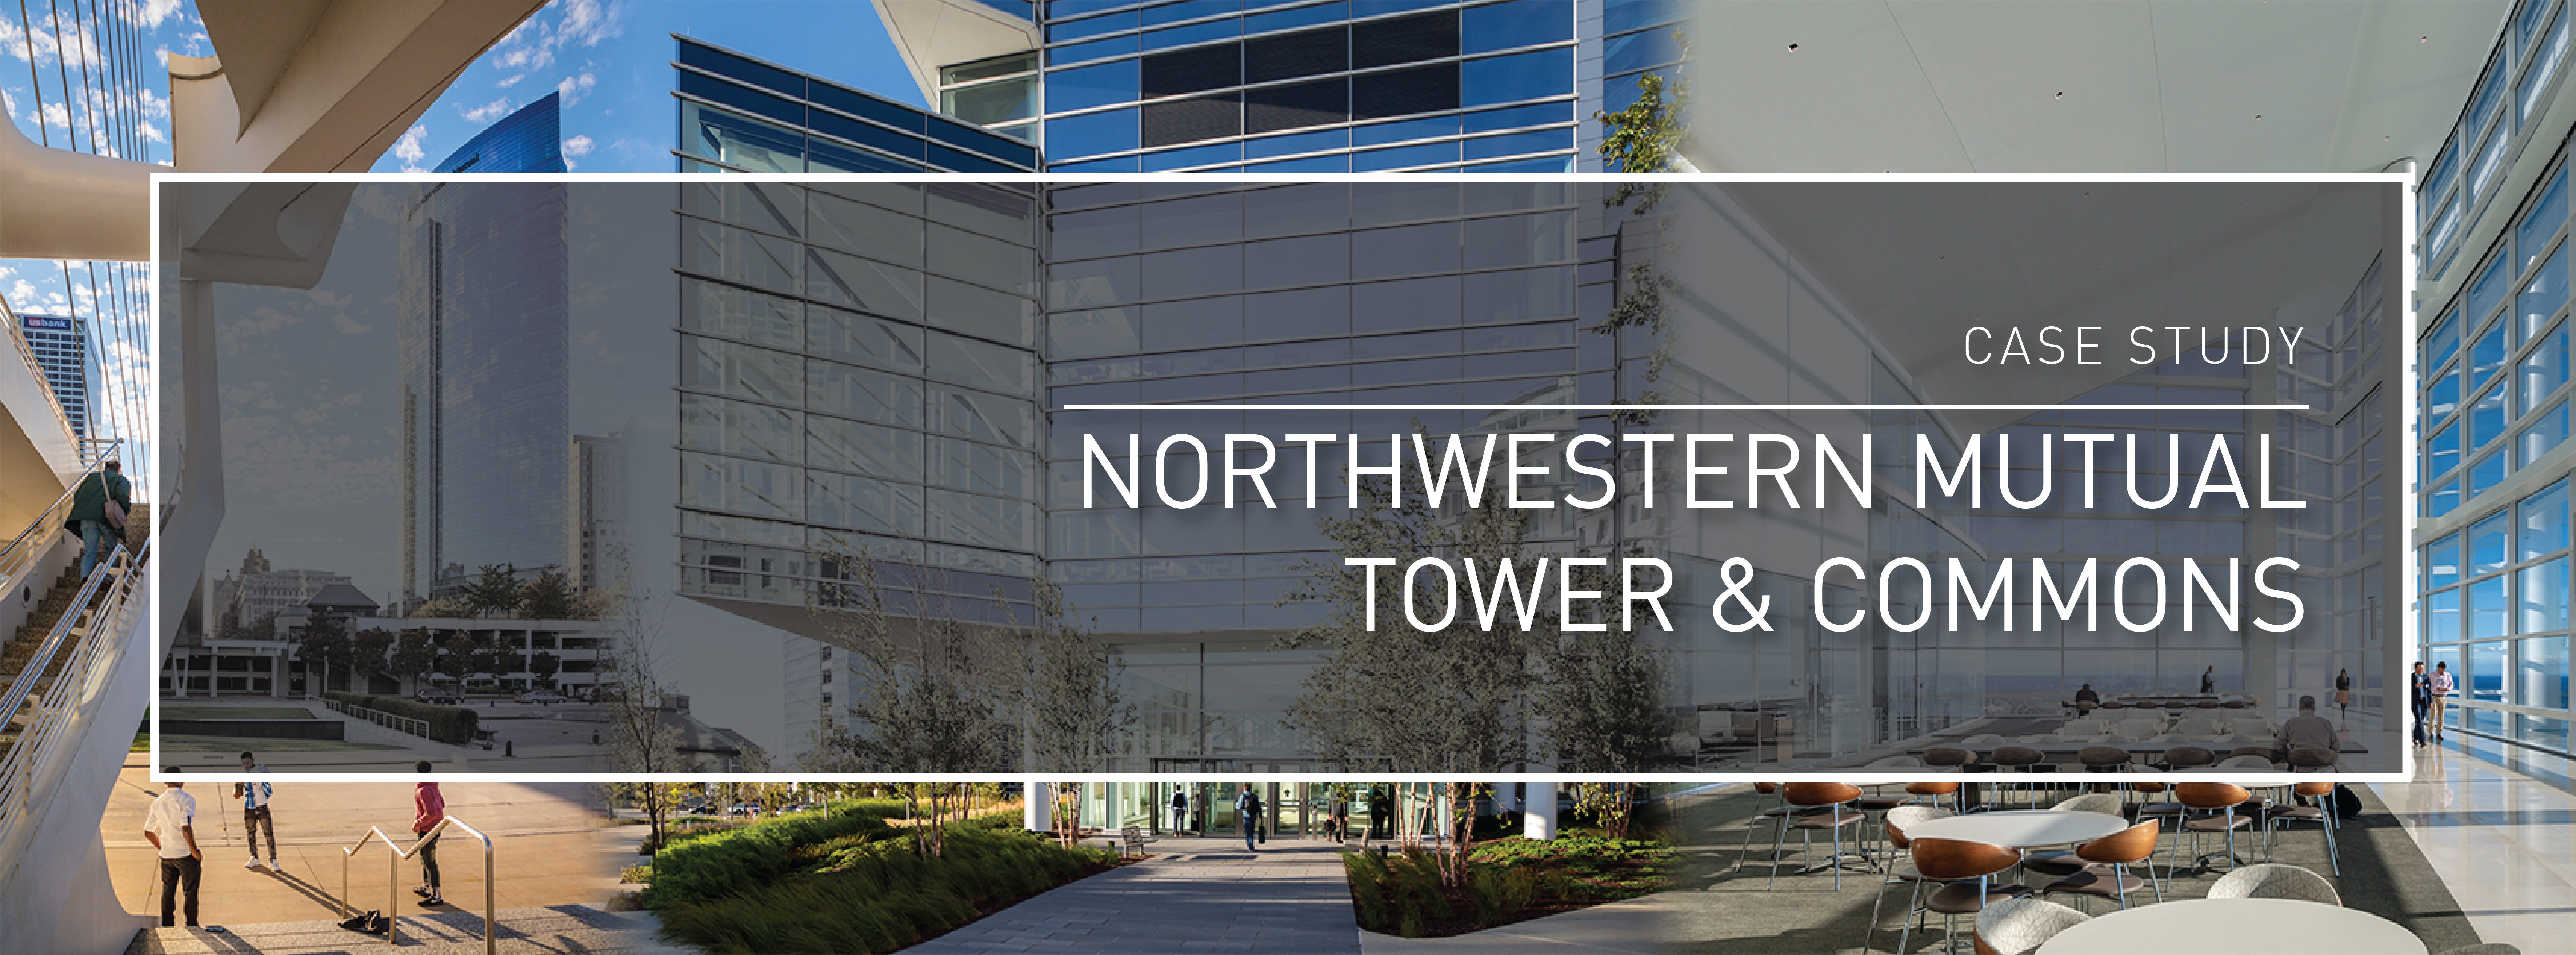 Case Study Northwestern Mutual Tower & Commons